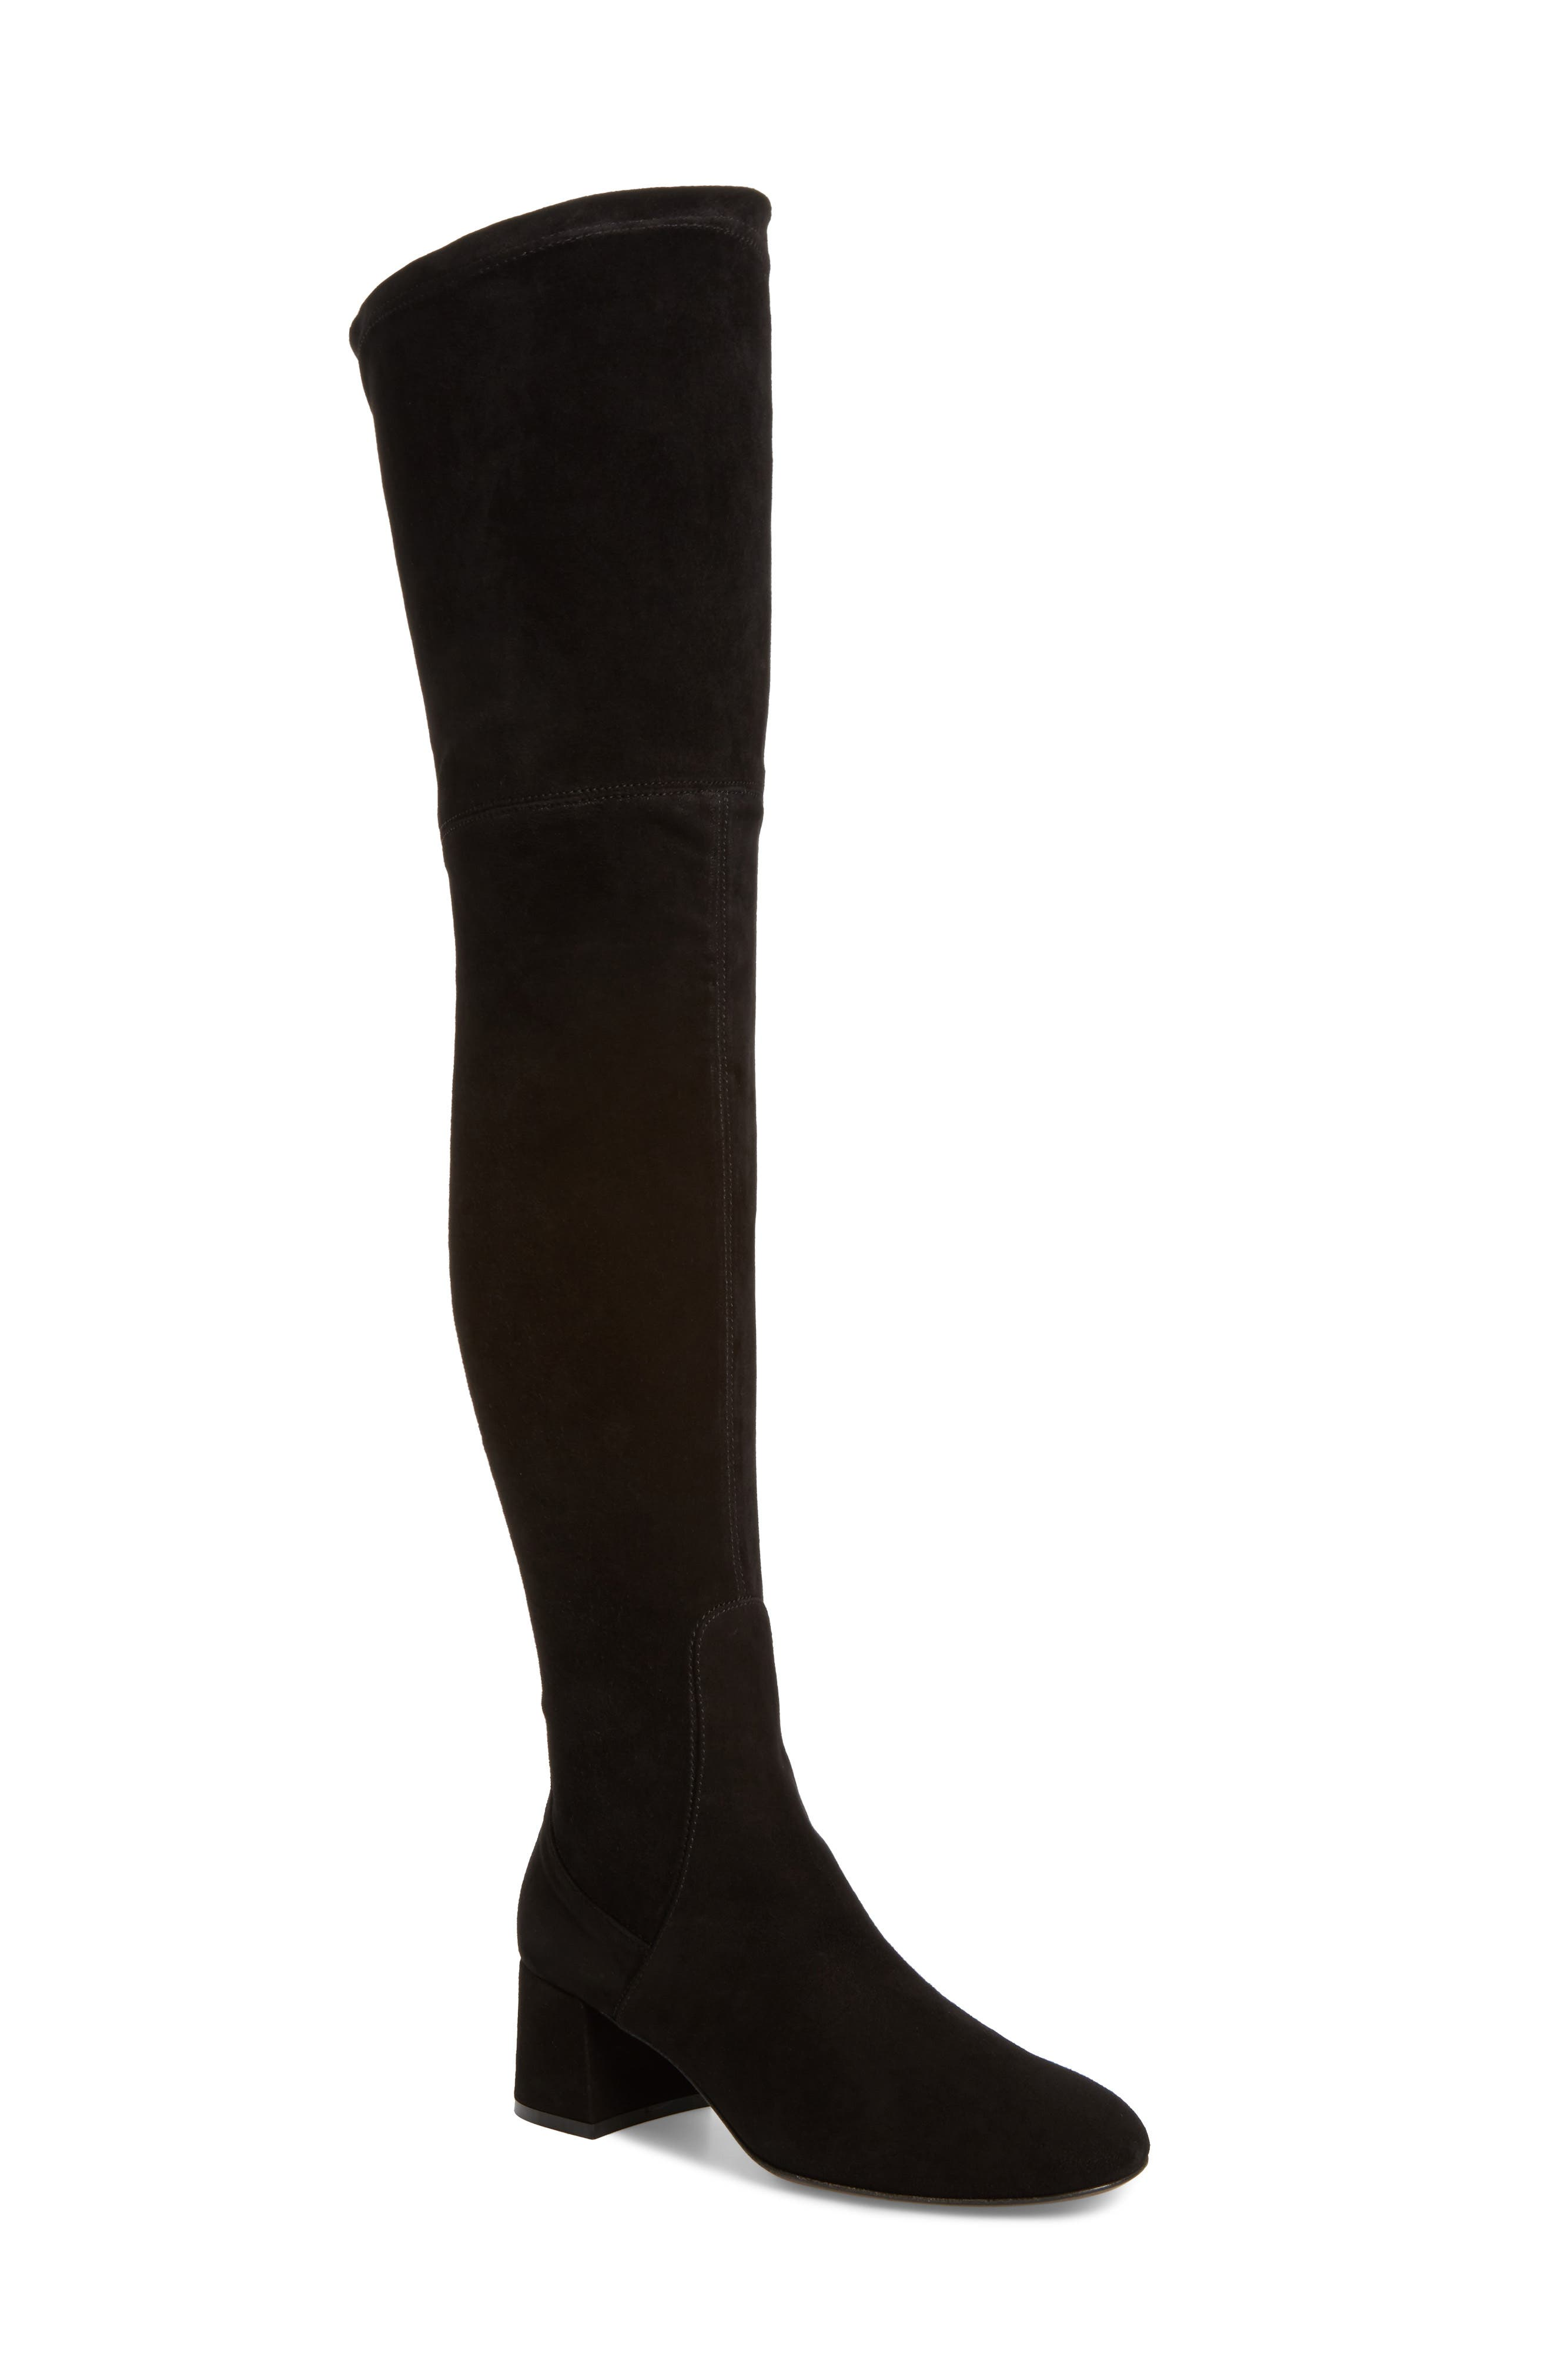 Over the Knee Boot,                         Main,                         color, Black Suede